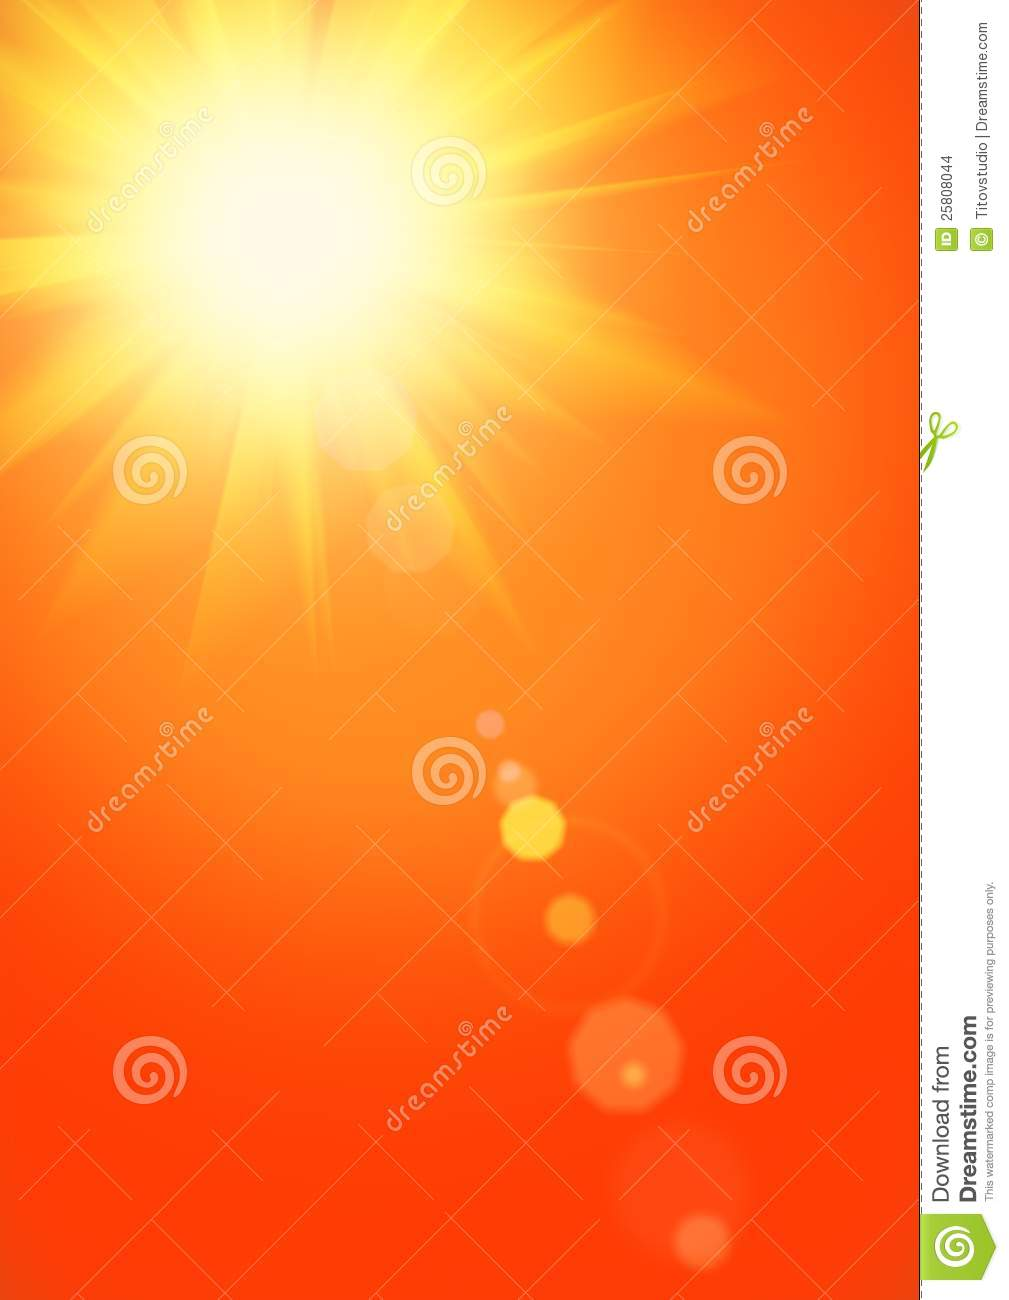 Summer Background With Magnificent Summer Sun Stock Images - Image ...